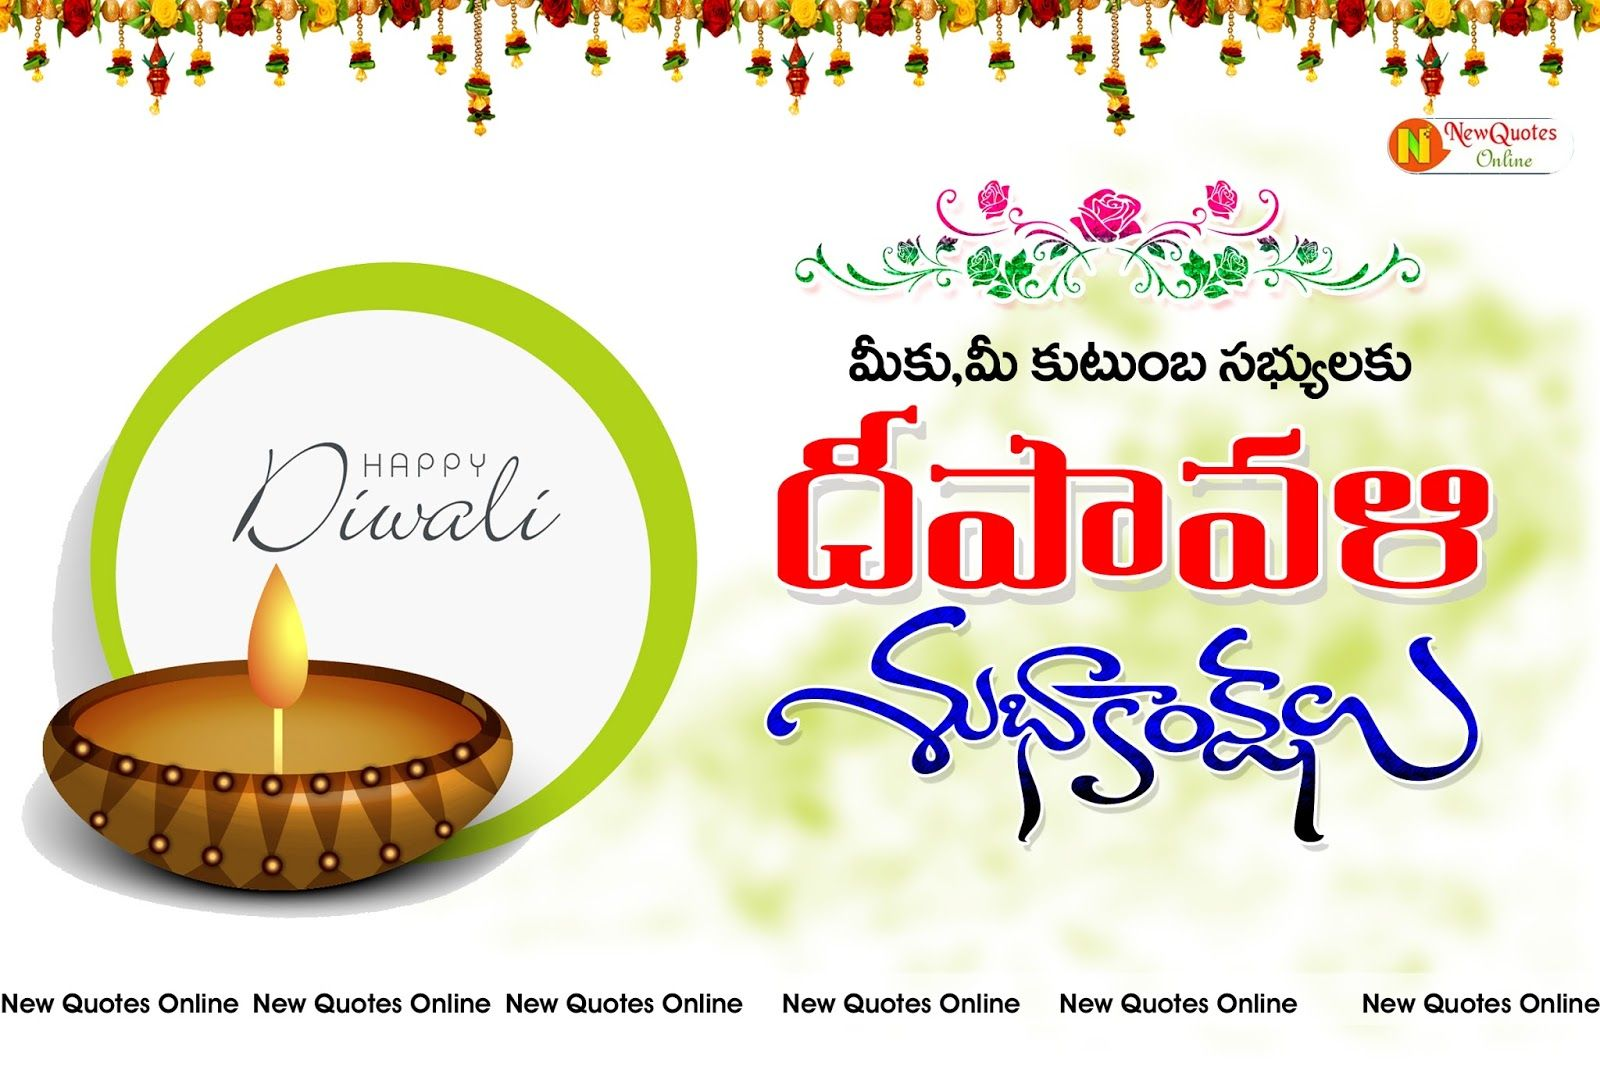 Diwali Quotes In Telugu Wishes Greetings Images Pics Hd Wallpapers